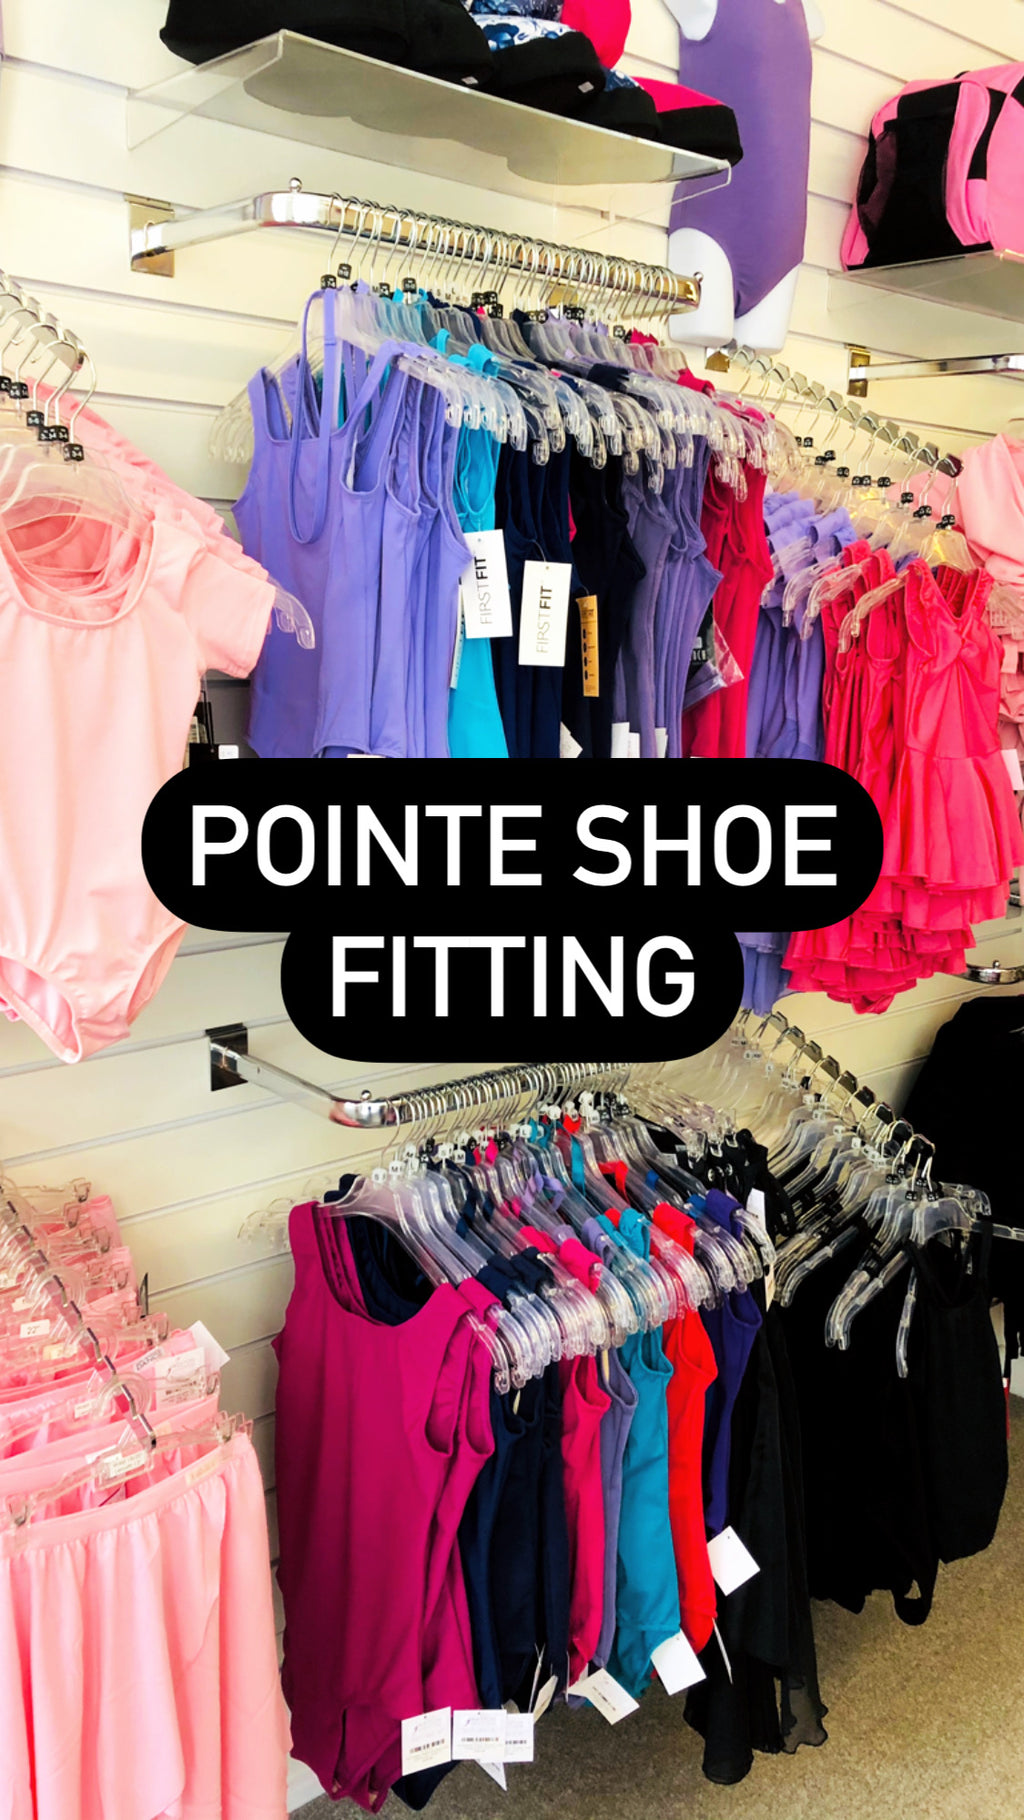 Pointe Shoe Fitting (Gaynor Minden)